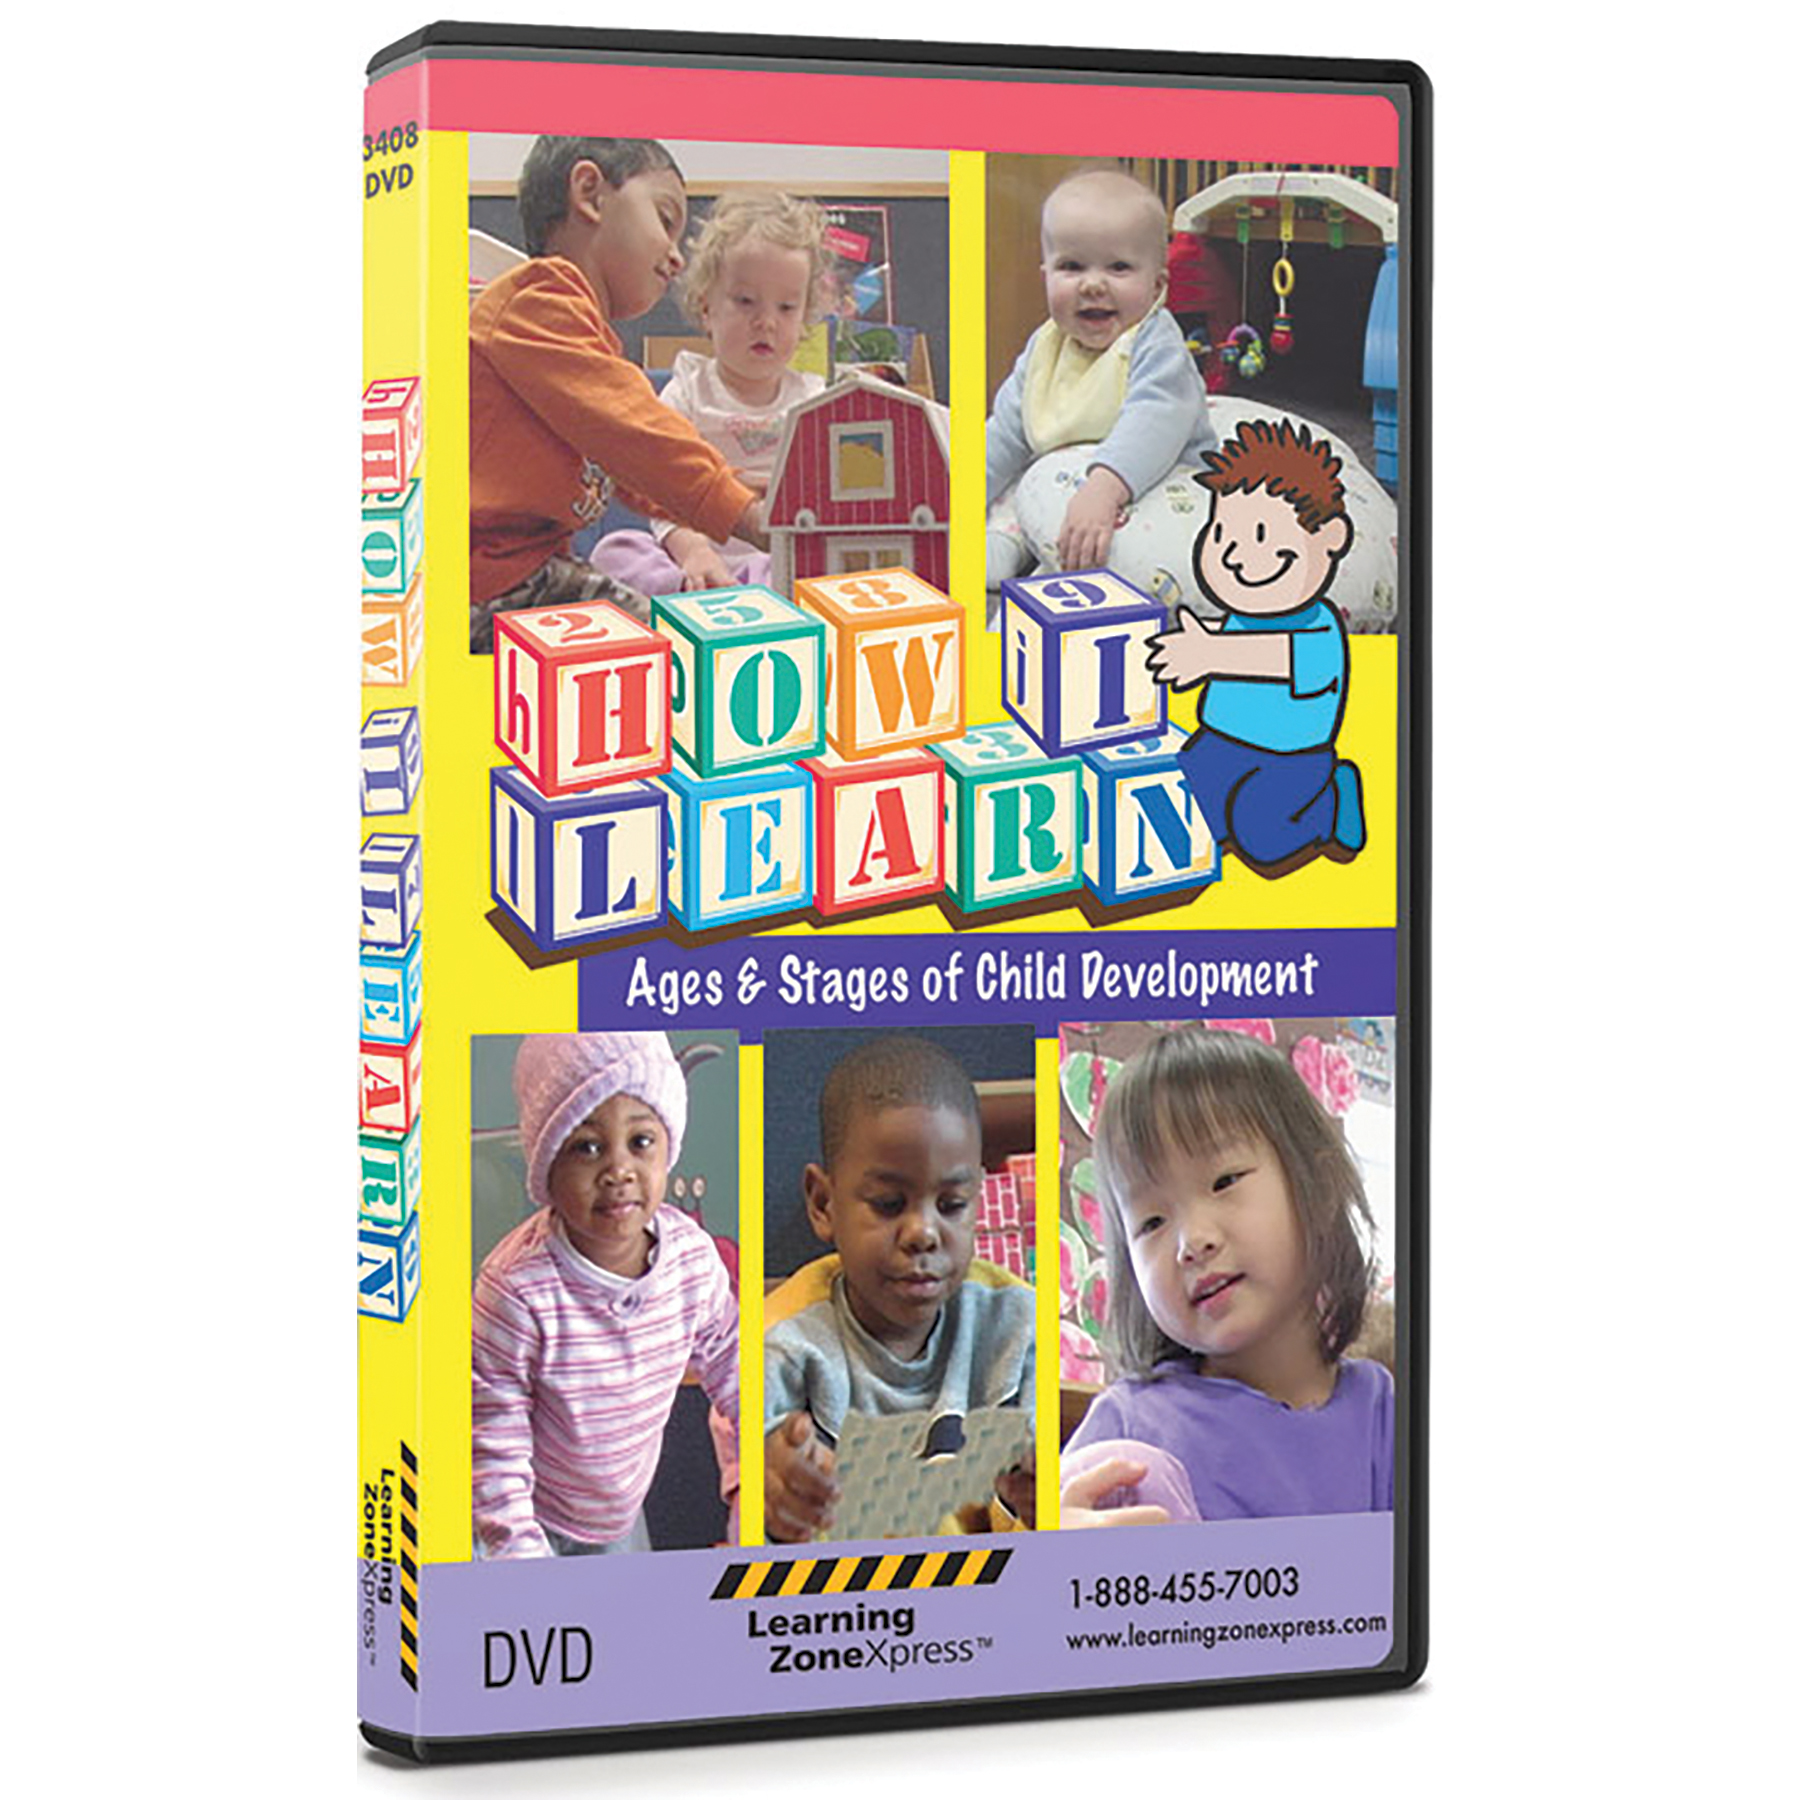 How I Learn DVD ages and stages of development cover, 5 photos of children many ages ethnicities, Childbirth Graphics, 48952